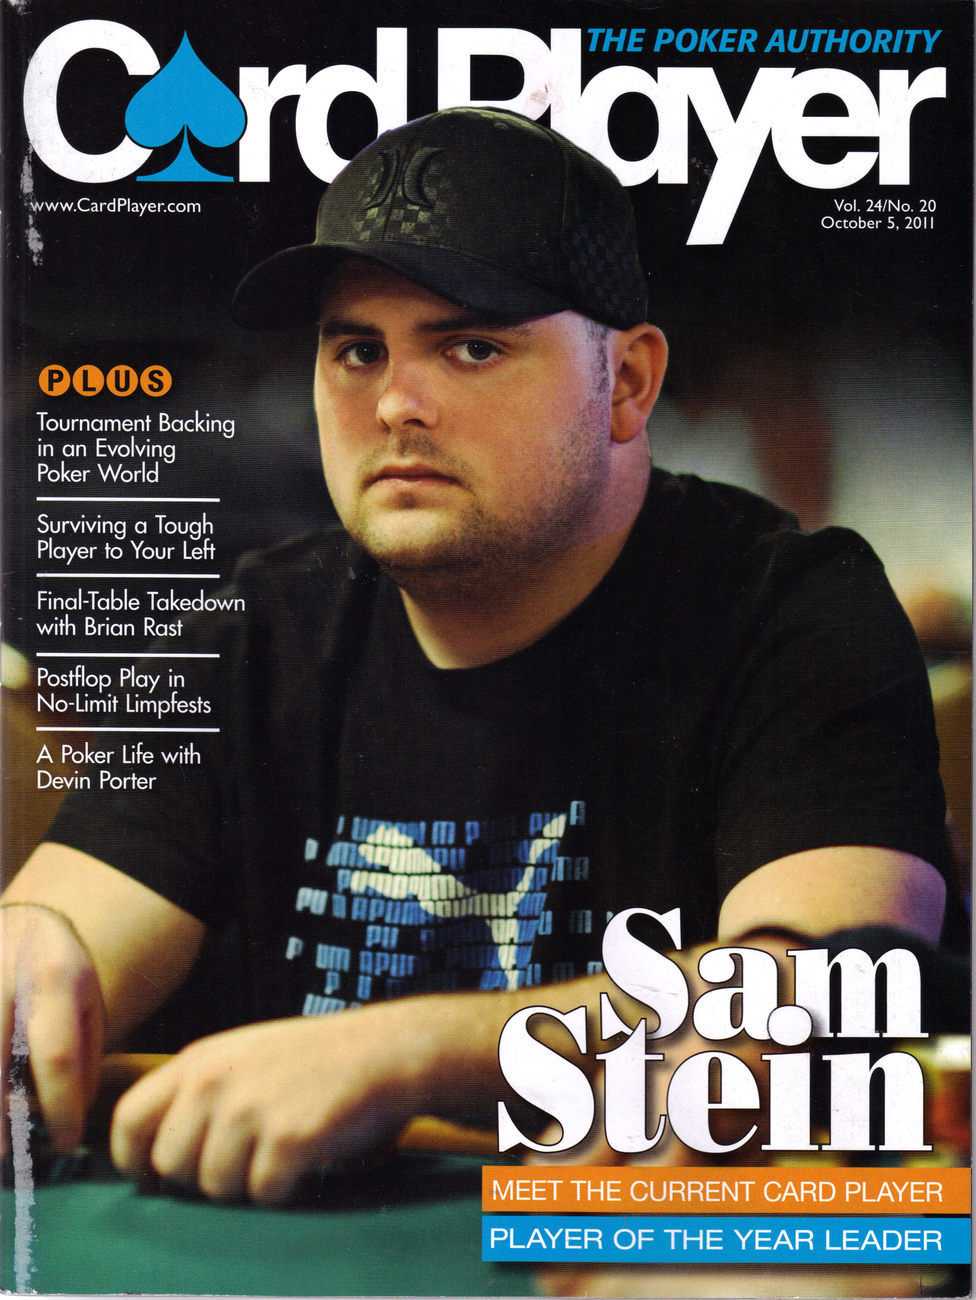 Player of the Year, SAM STEIN @ CARD PLAYER Oct 5 2011